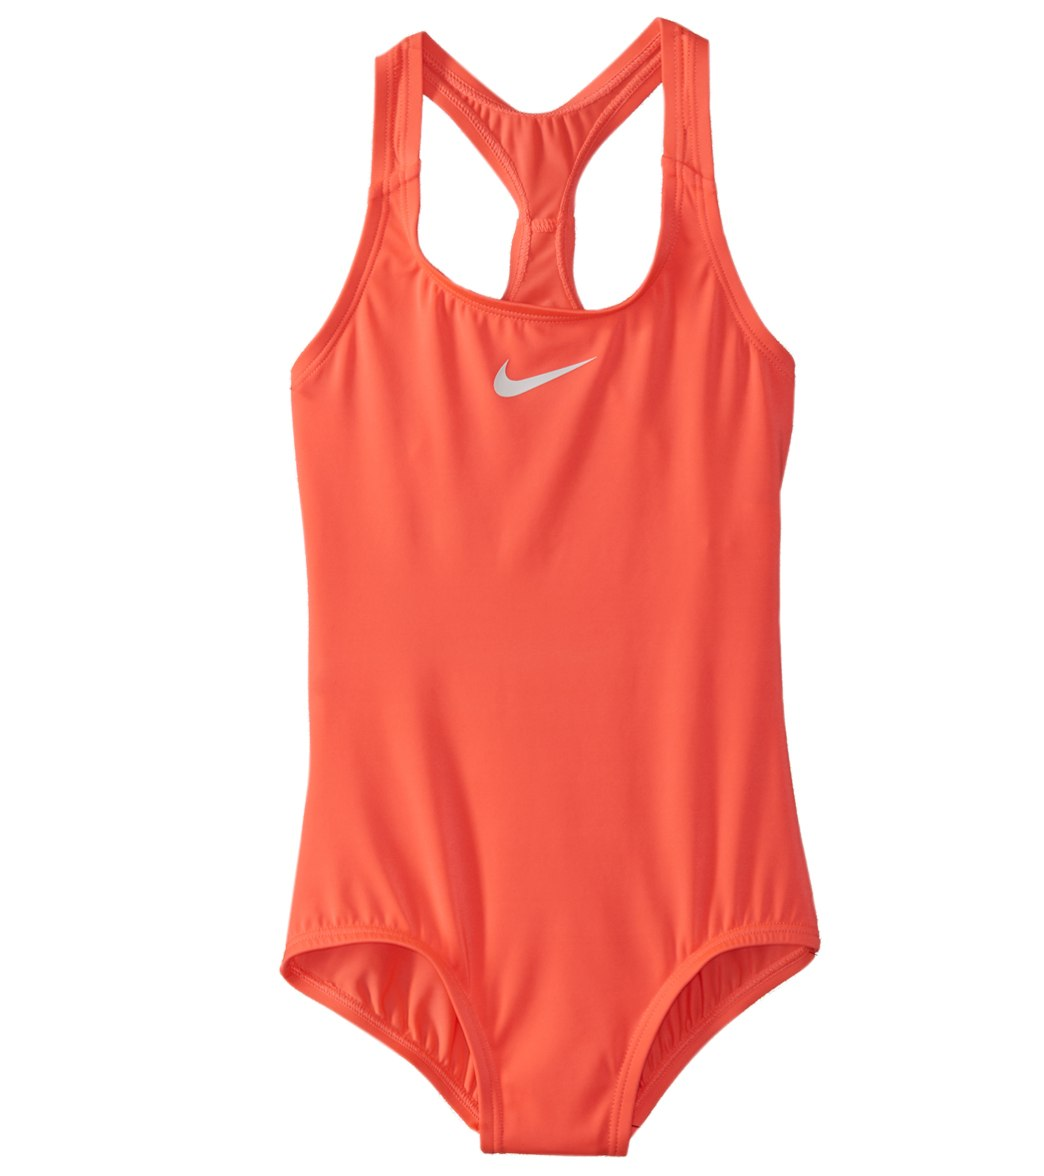 9c7568066b9b Girls  Nike Core Solid Racerback One Piece Swimsuit (Big Kid) at  SwimOutlet.com